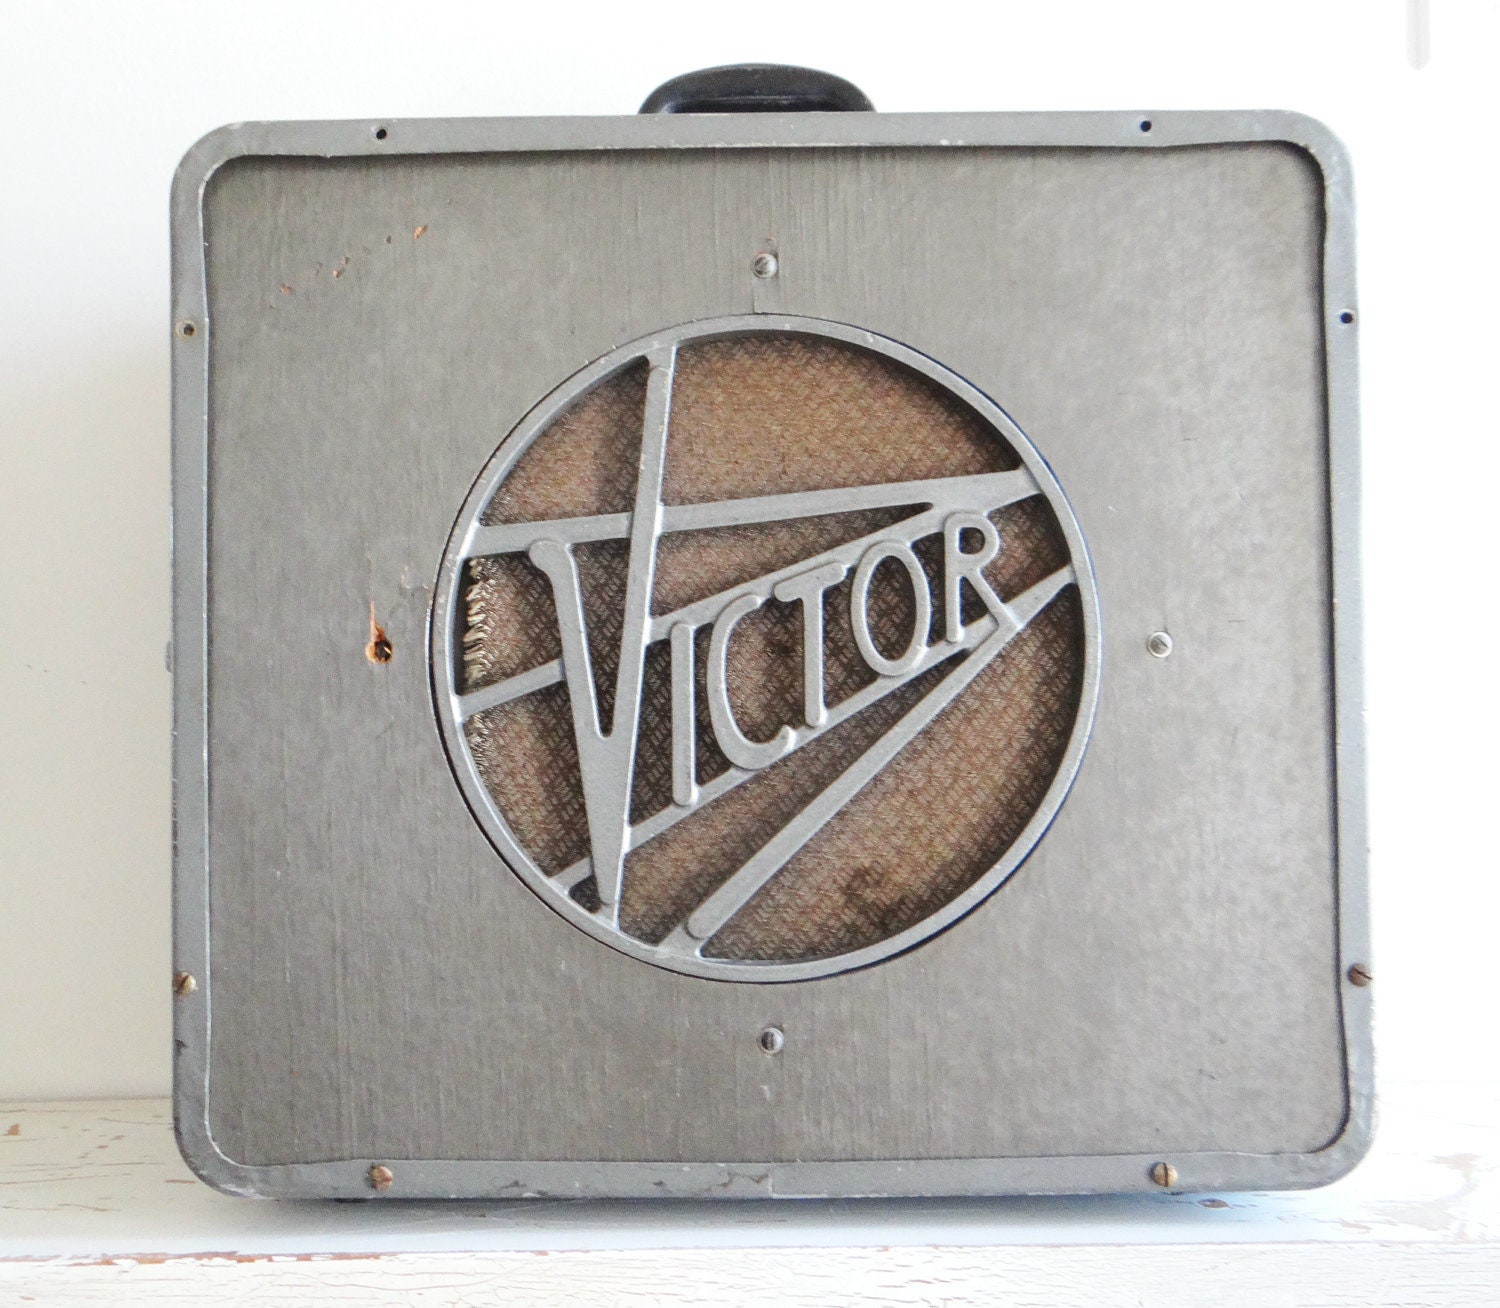 Vintage Victor Speaker Box For 16mm Film Projectors